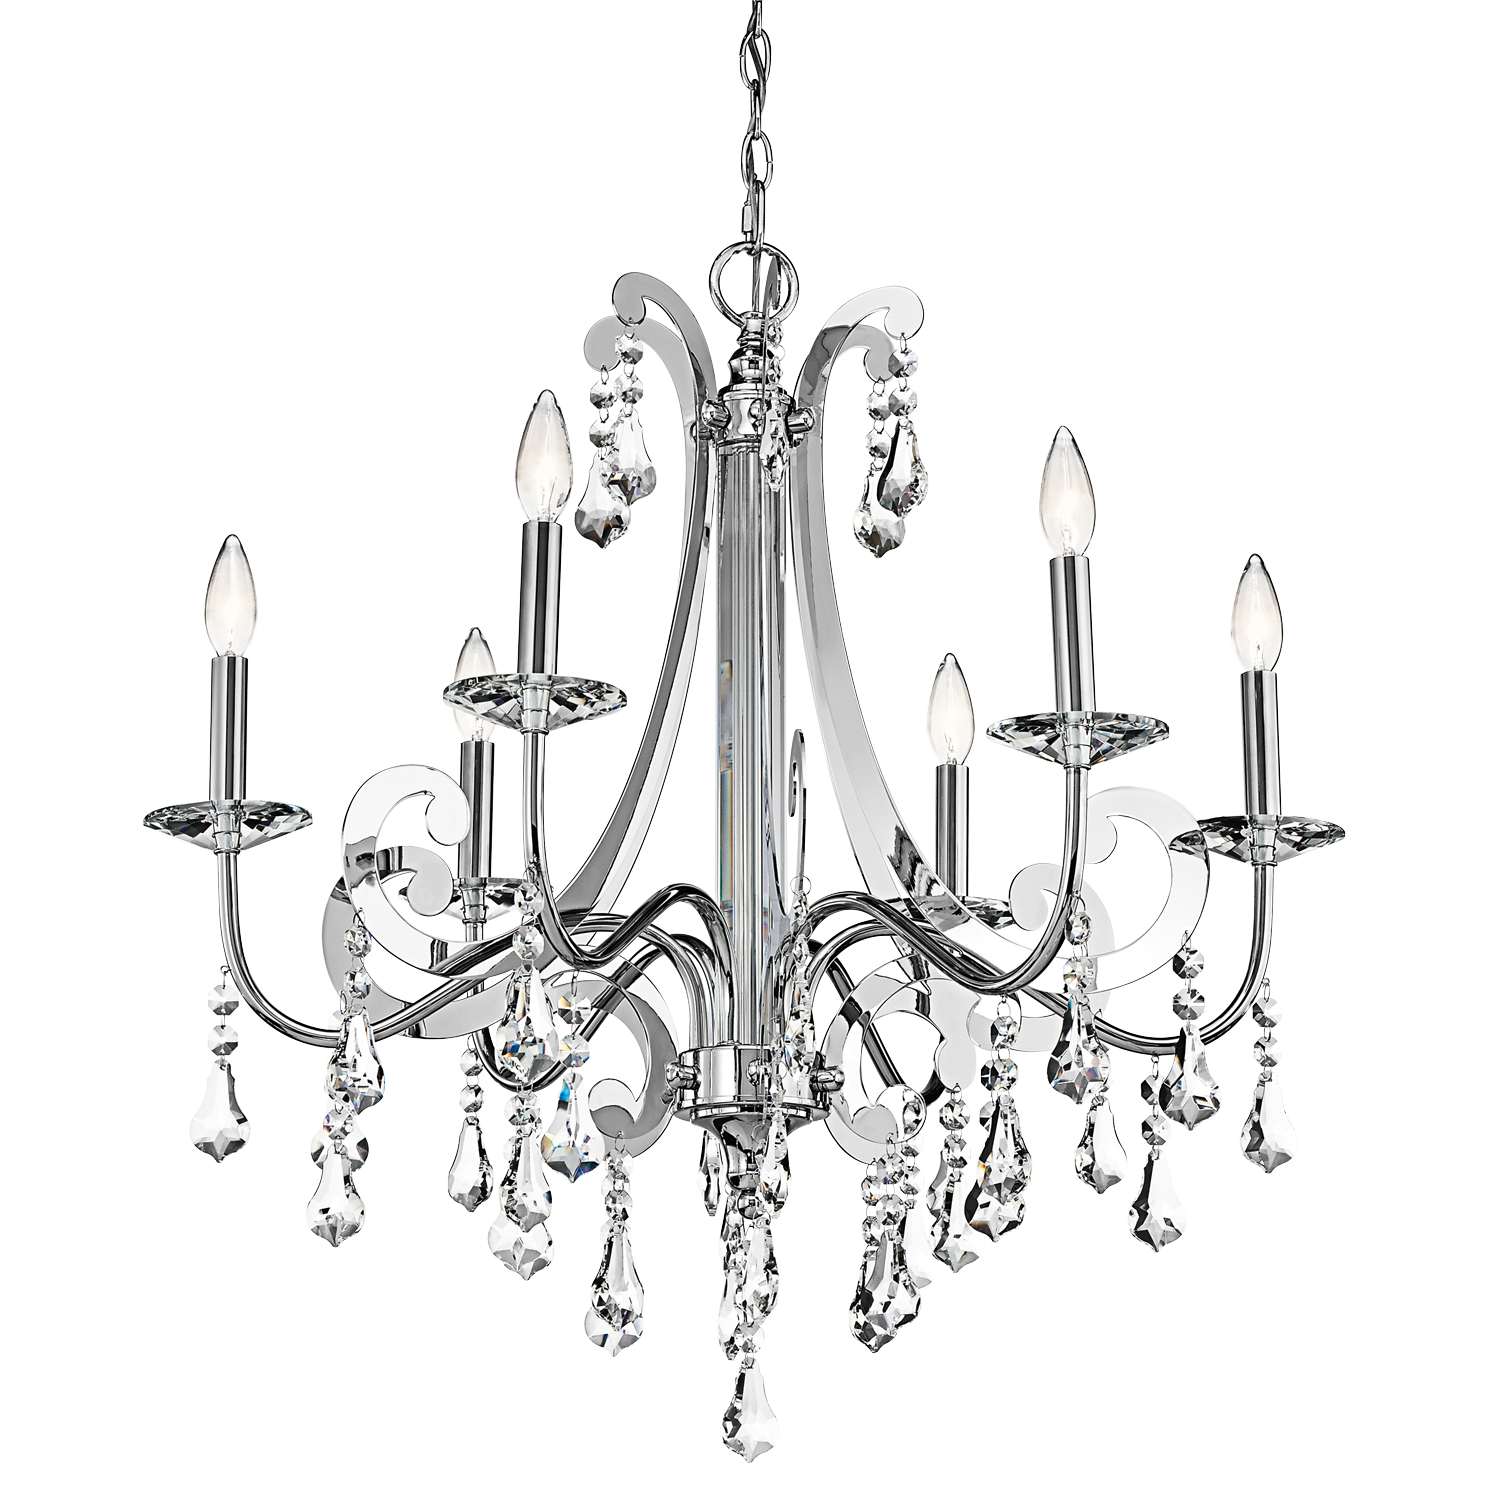 picture black and white library Chandelier clipart draw. Line drawing at getdrawings.